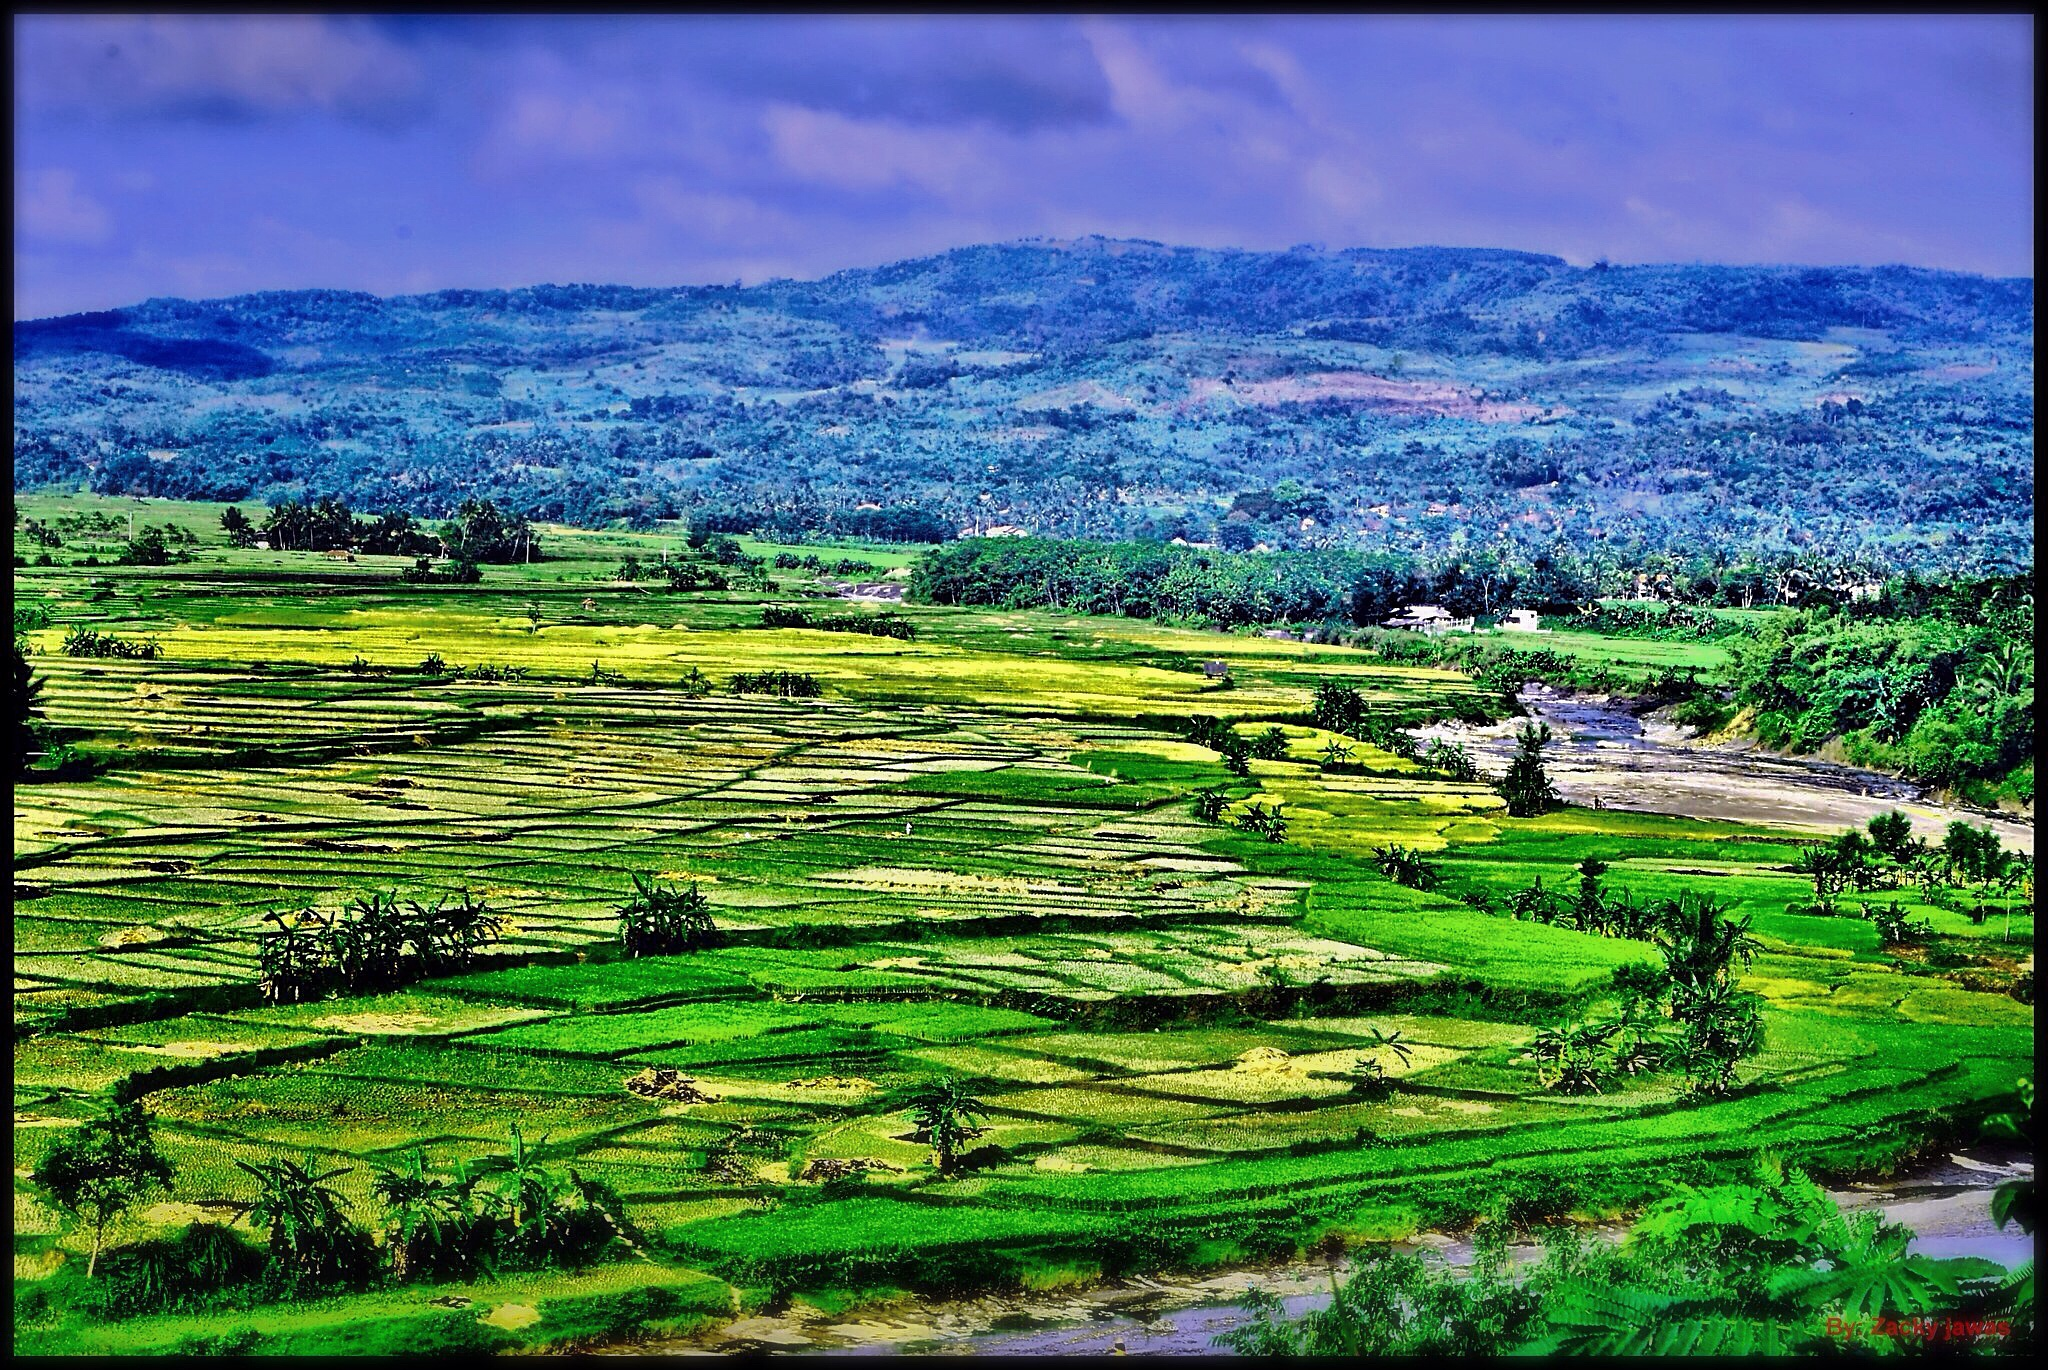 The land of my country by Muzakir Jawas